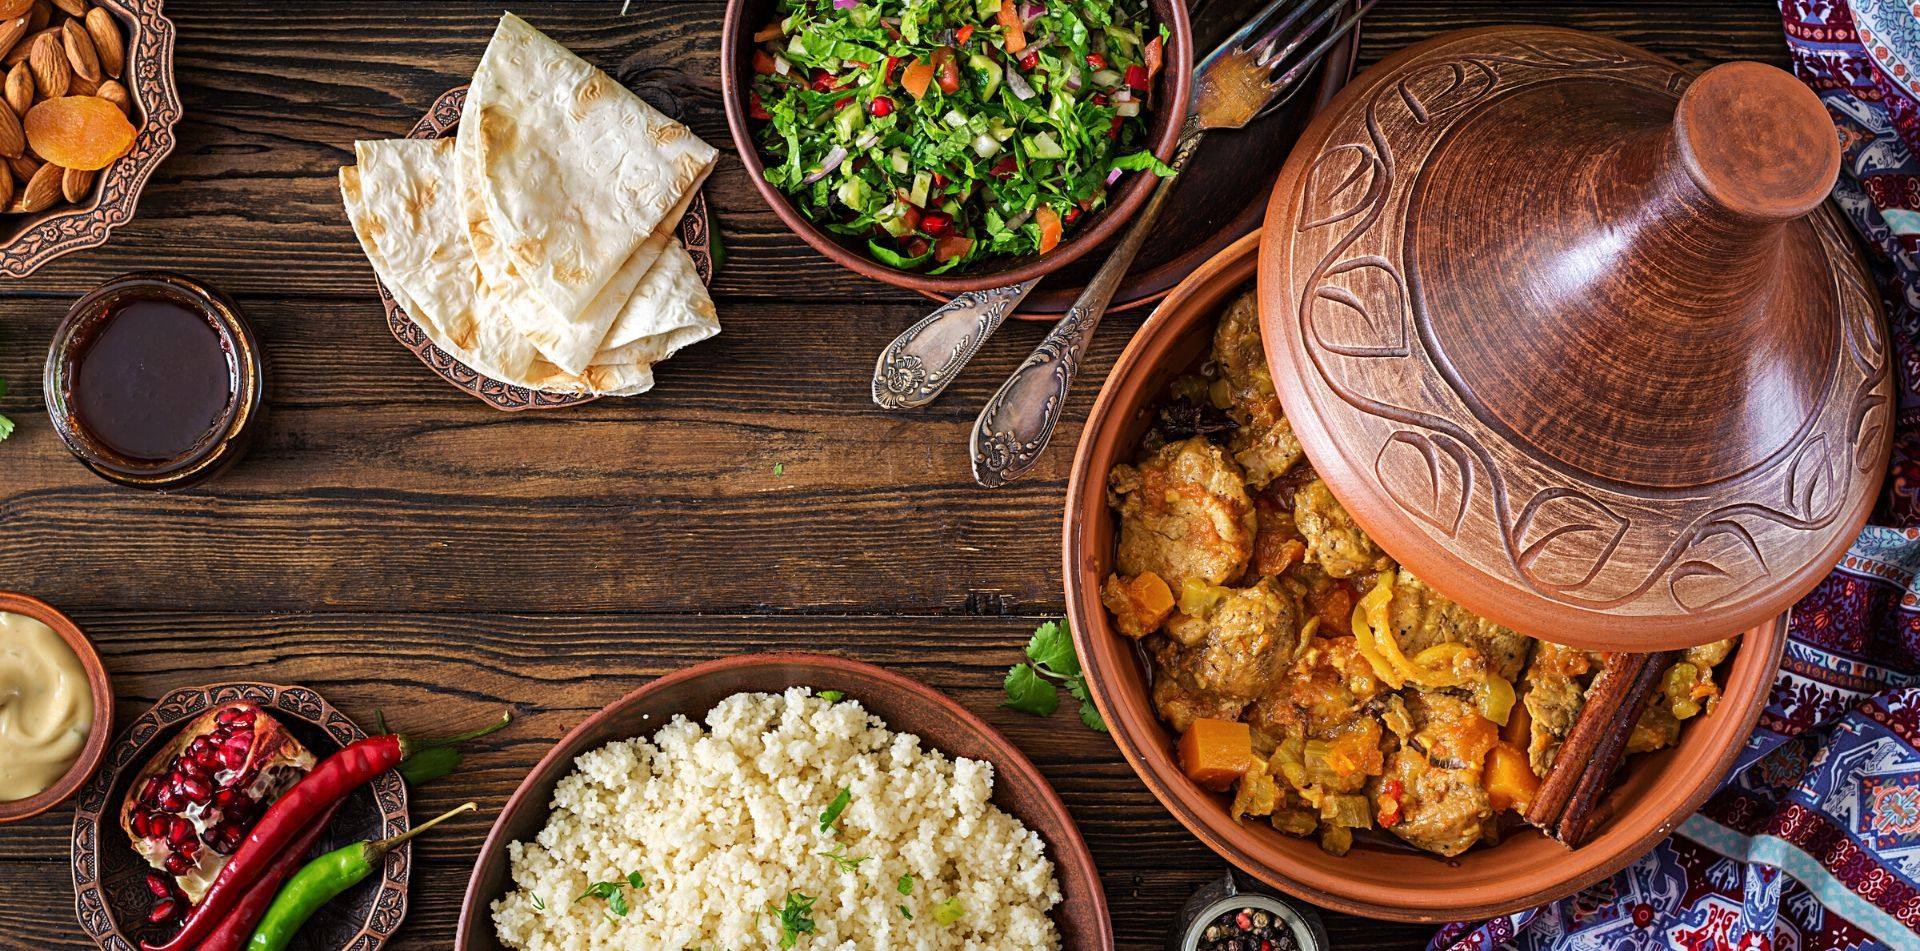 Africa Morocco traditional savory tagine dish with couscous fresh salad rich spices culture - luxury vacation destinations